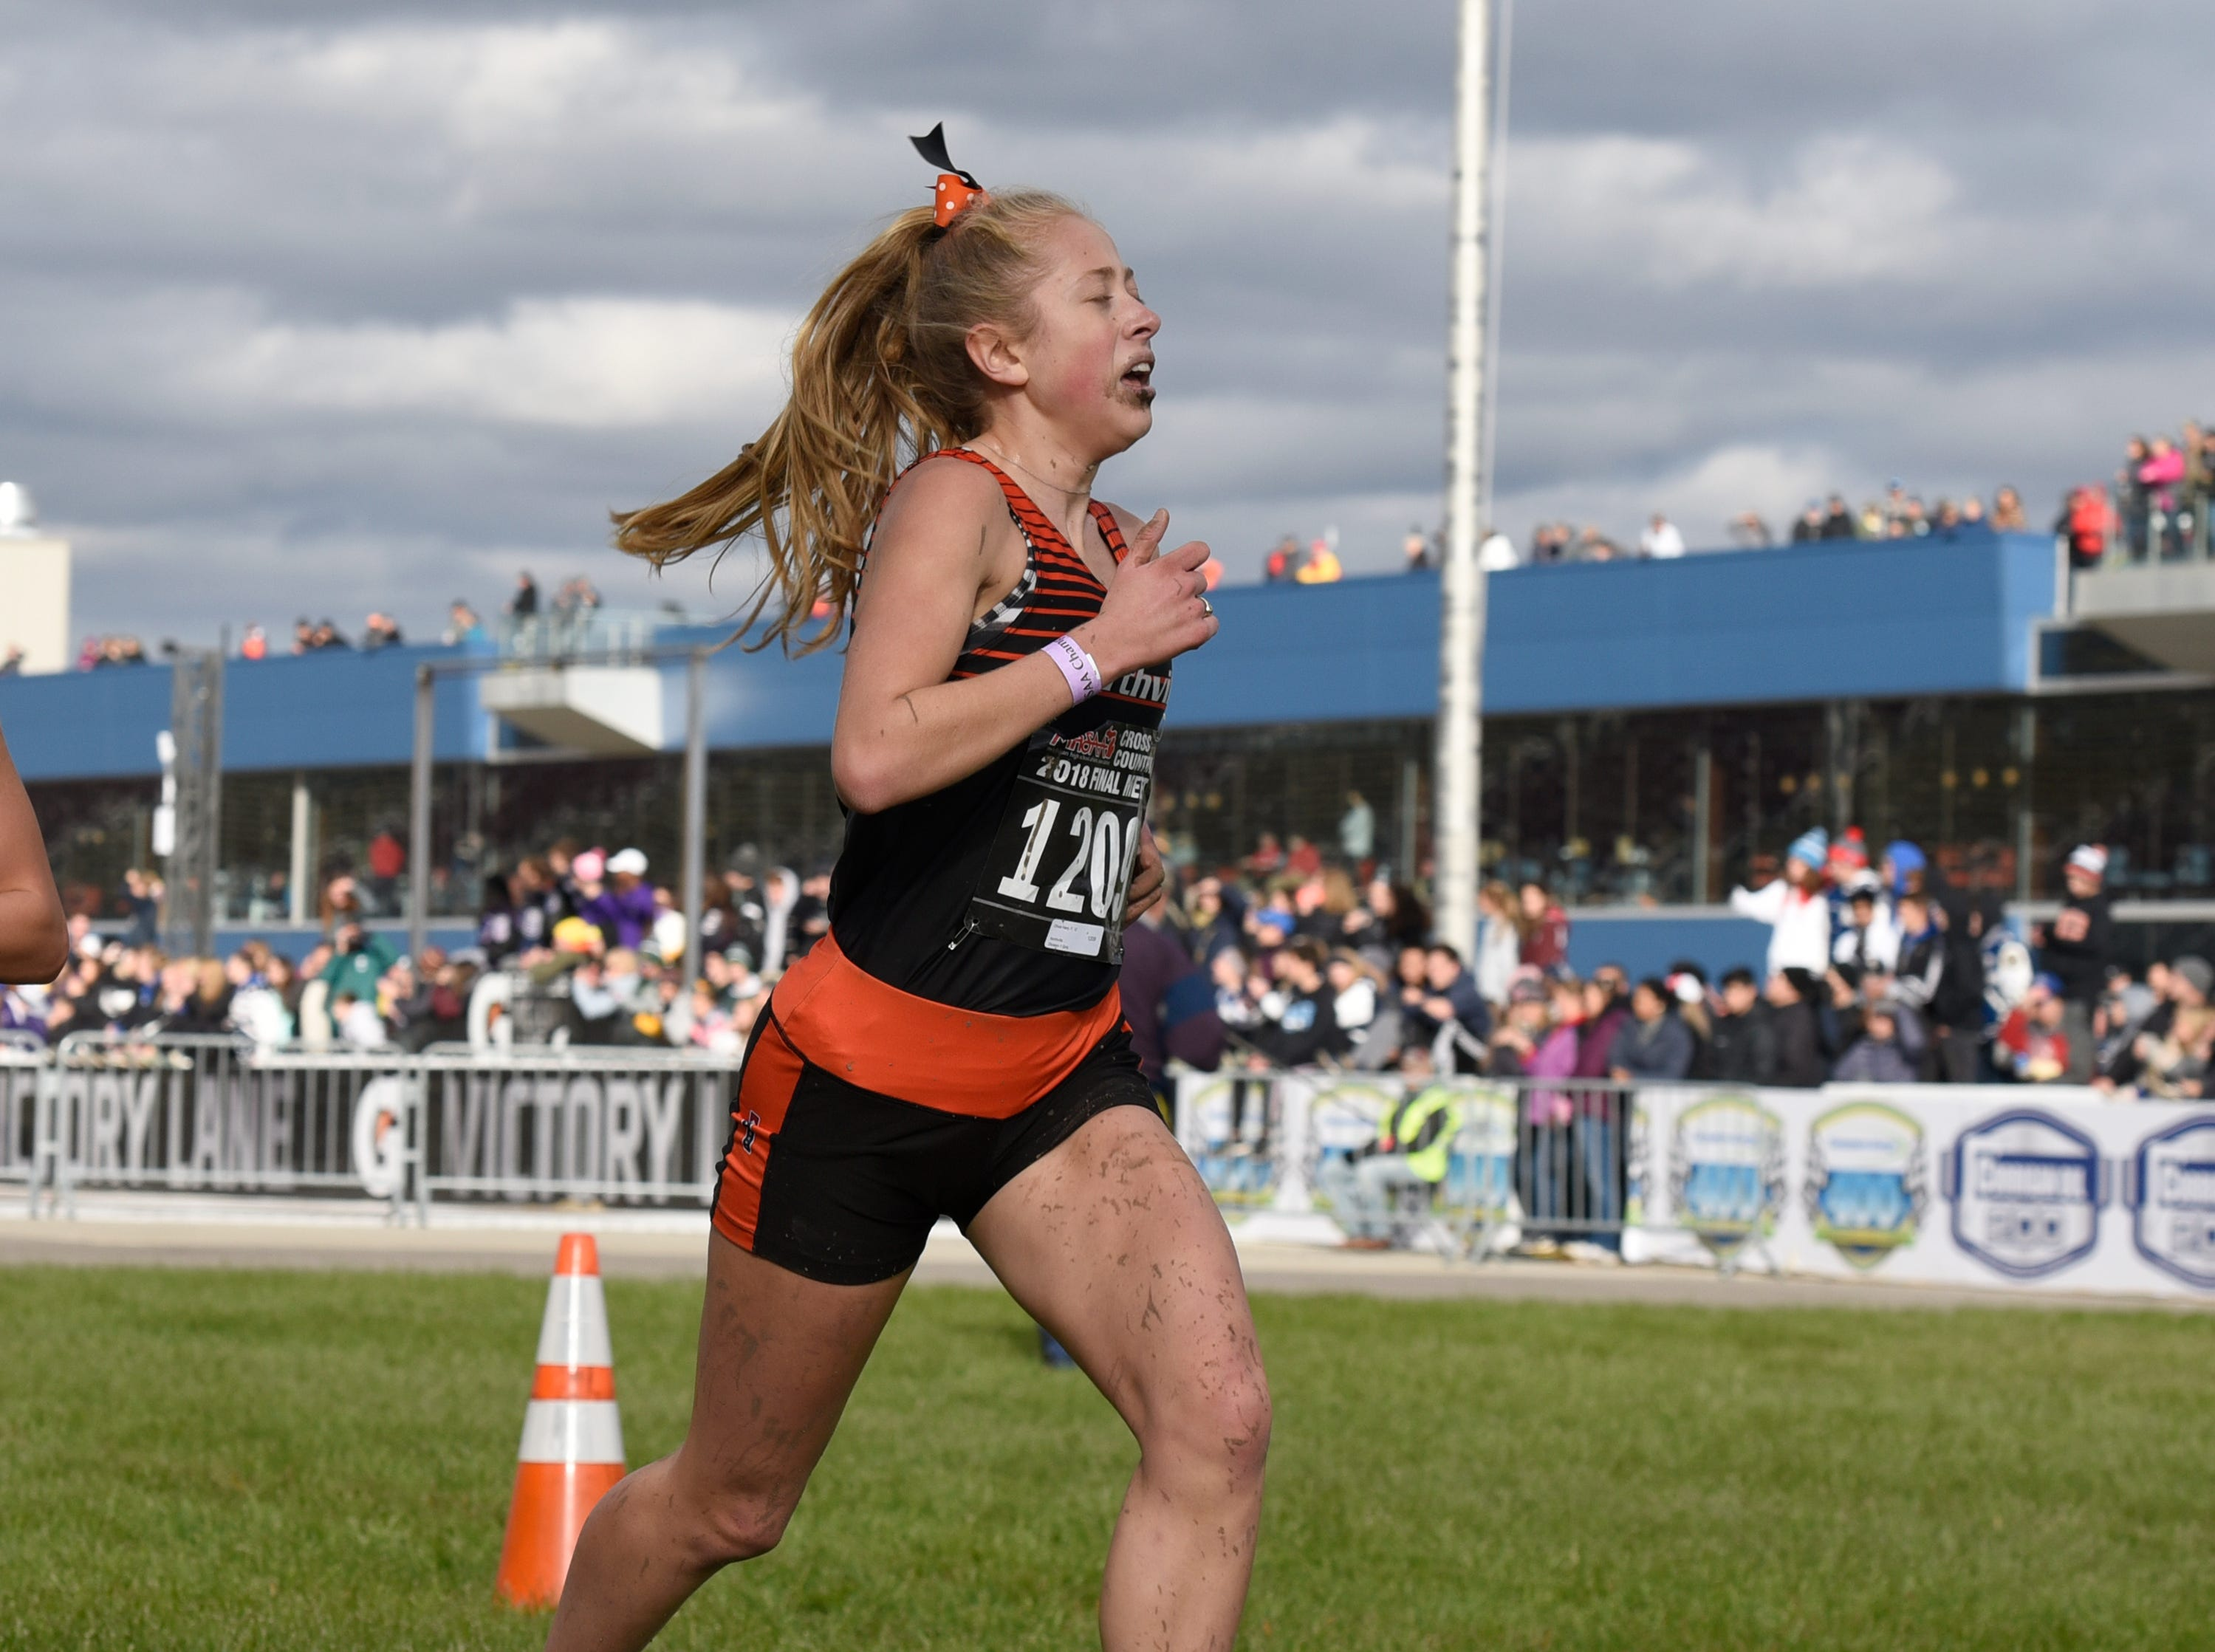 Northville's Olivia Harp during the Division 1 2018 cross country finals at Michigan International Speedway.